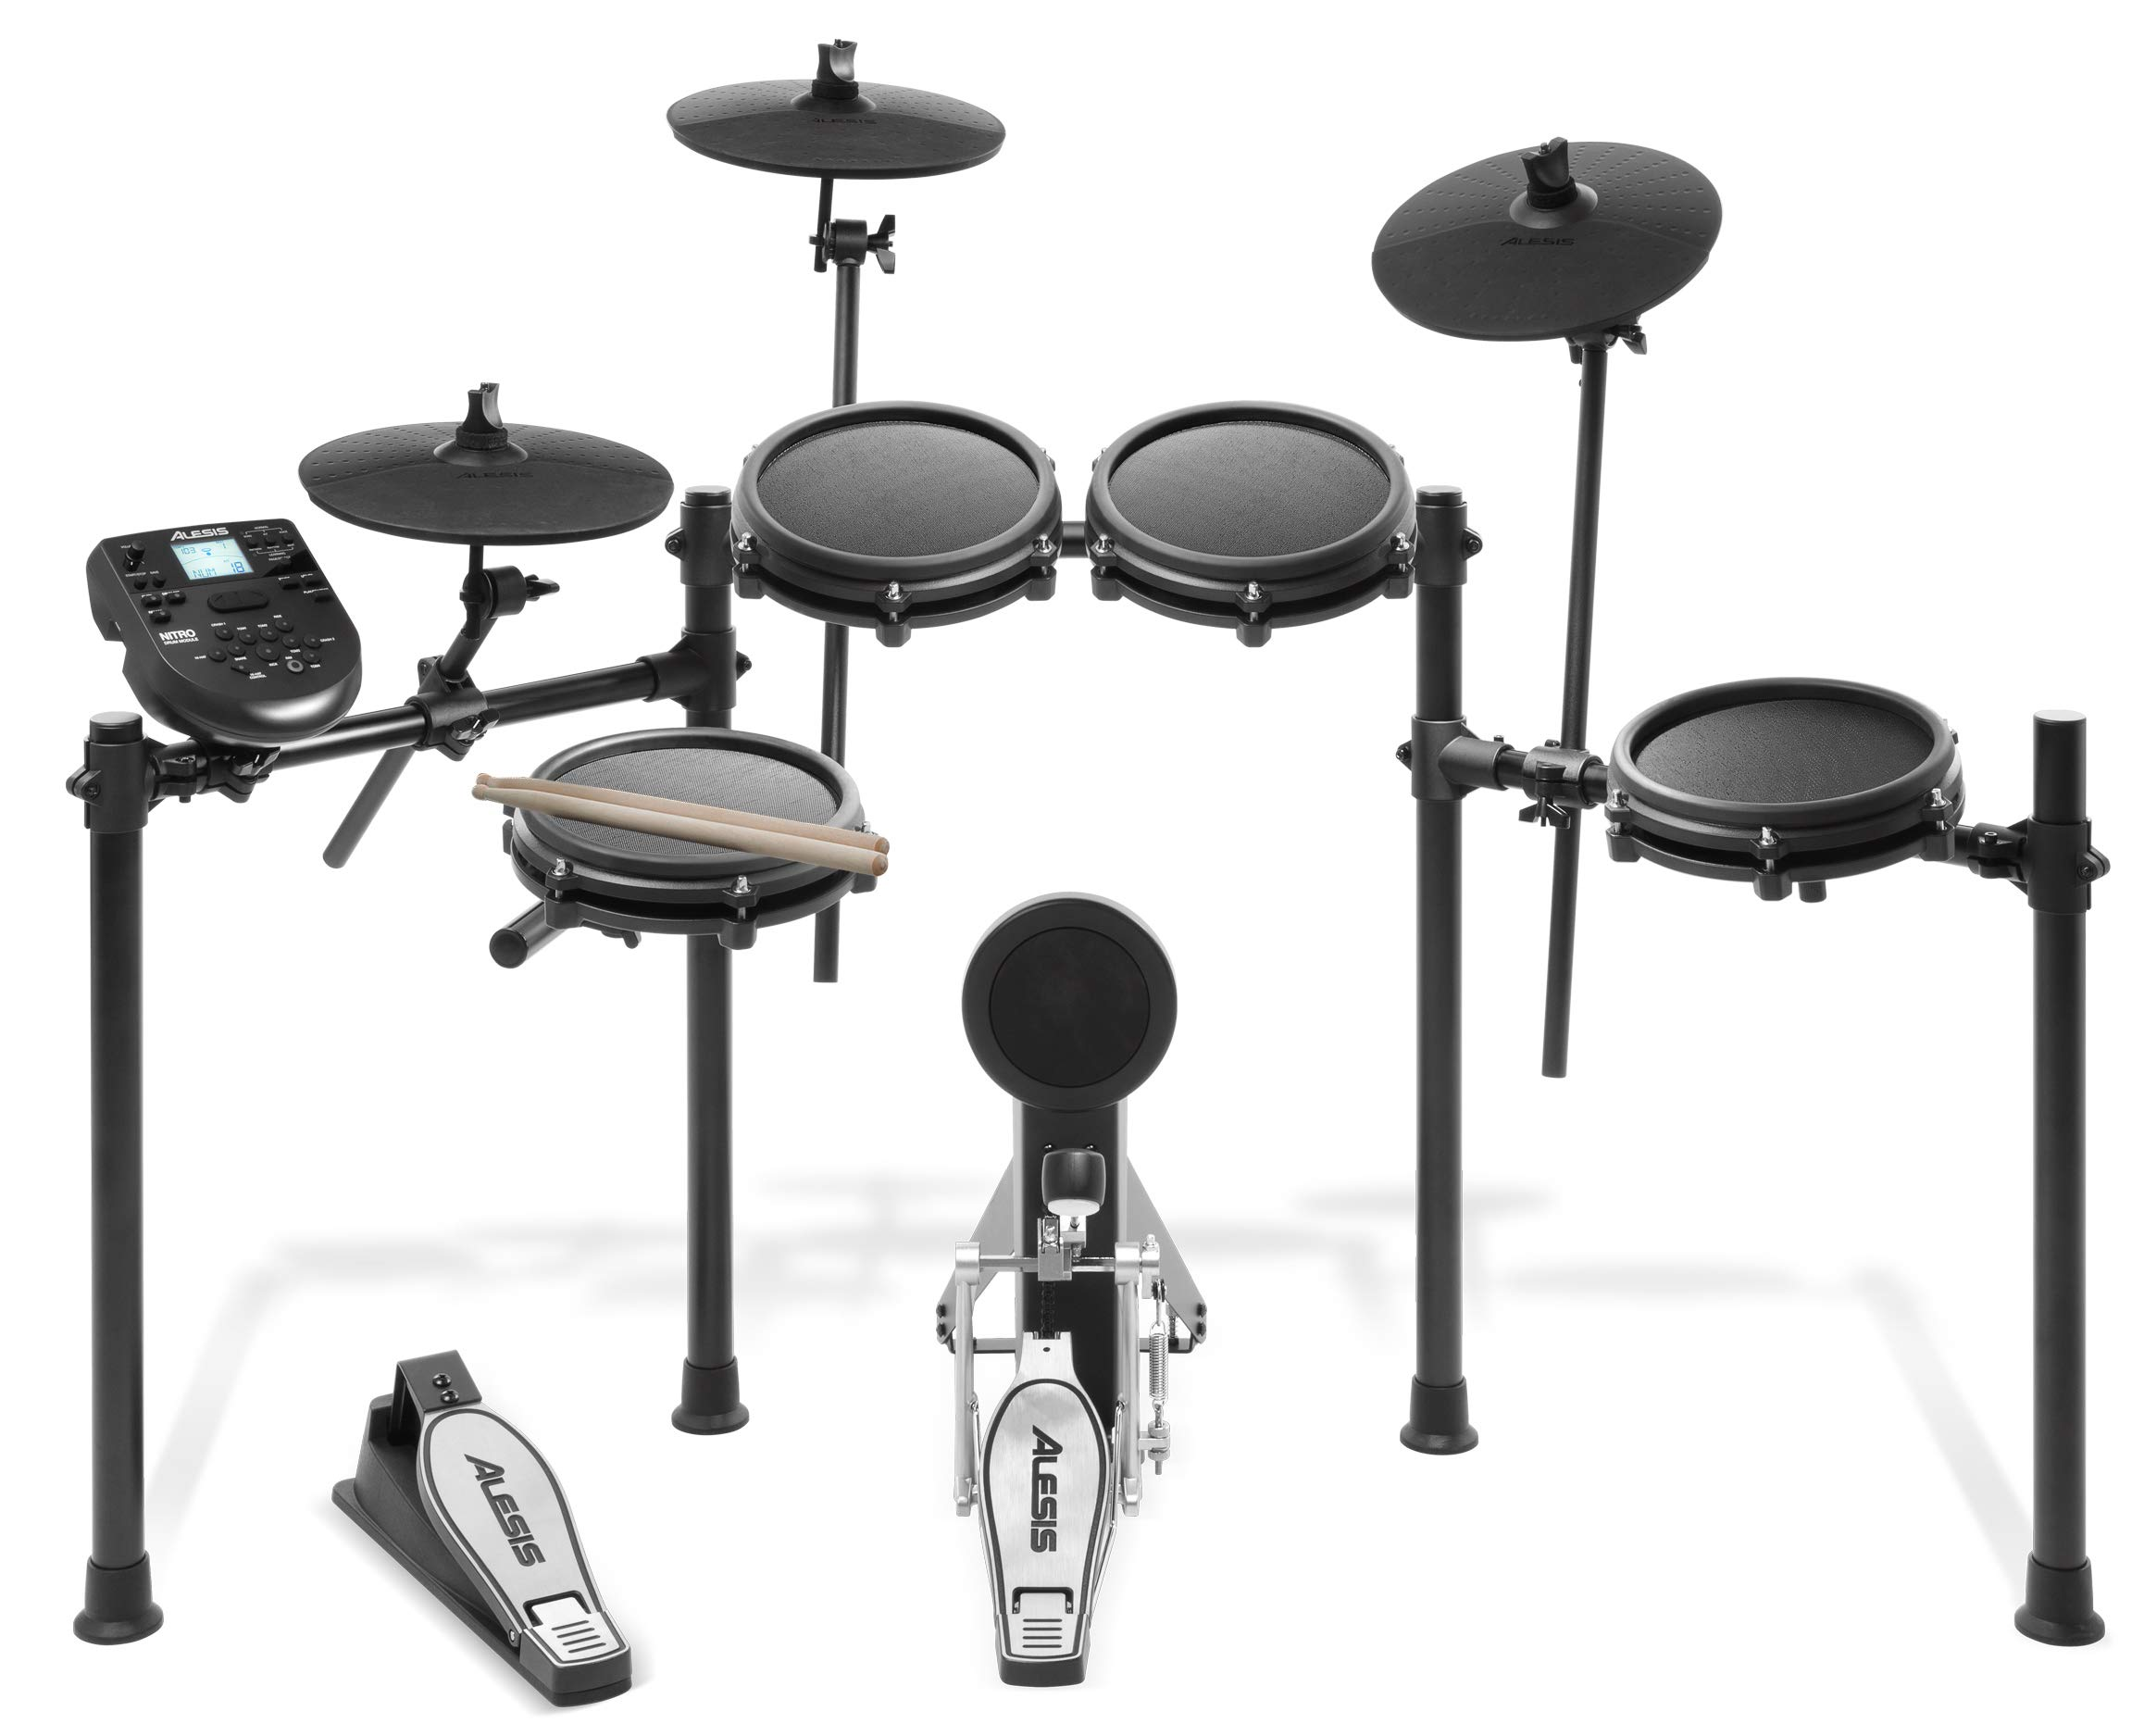 Alesis Drums Nitro Mesh Kit | Eight Piece All-Mesh Electronic Drum Kit With Super-Solid Aluminum Rack, 385 Sounds, 60 Play-Along Tracks, Connection Cables, Drum Sticks & Drum Key included. by Alesis